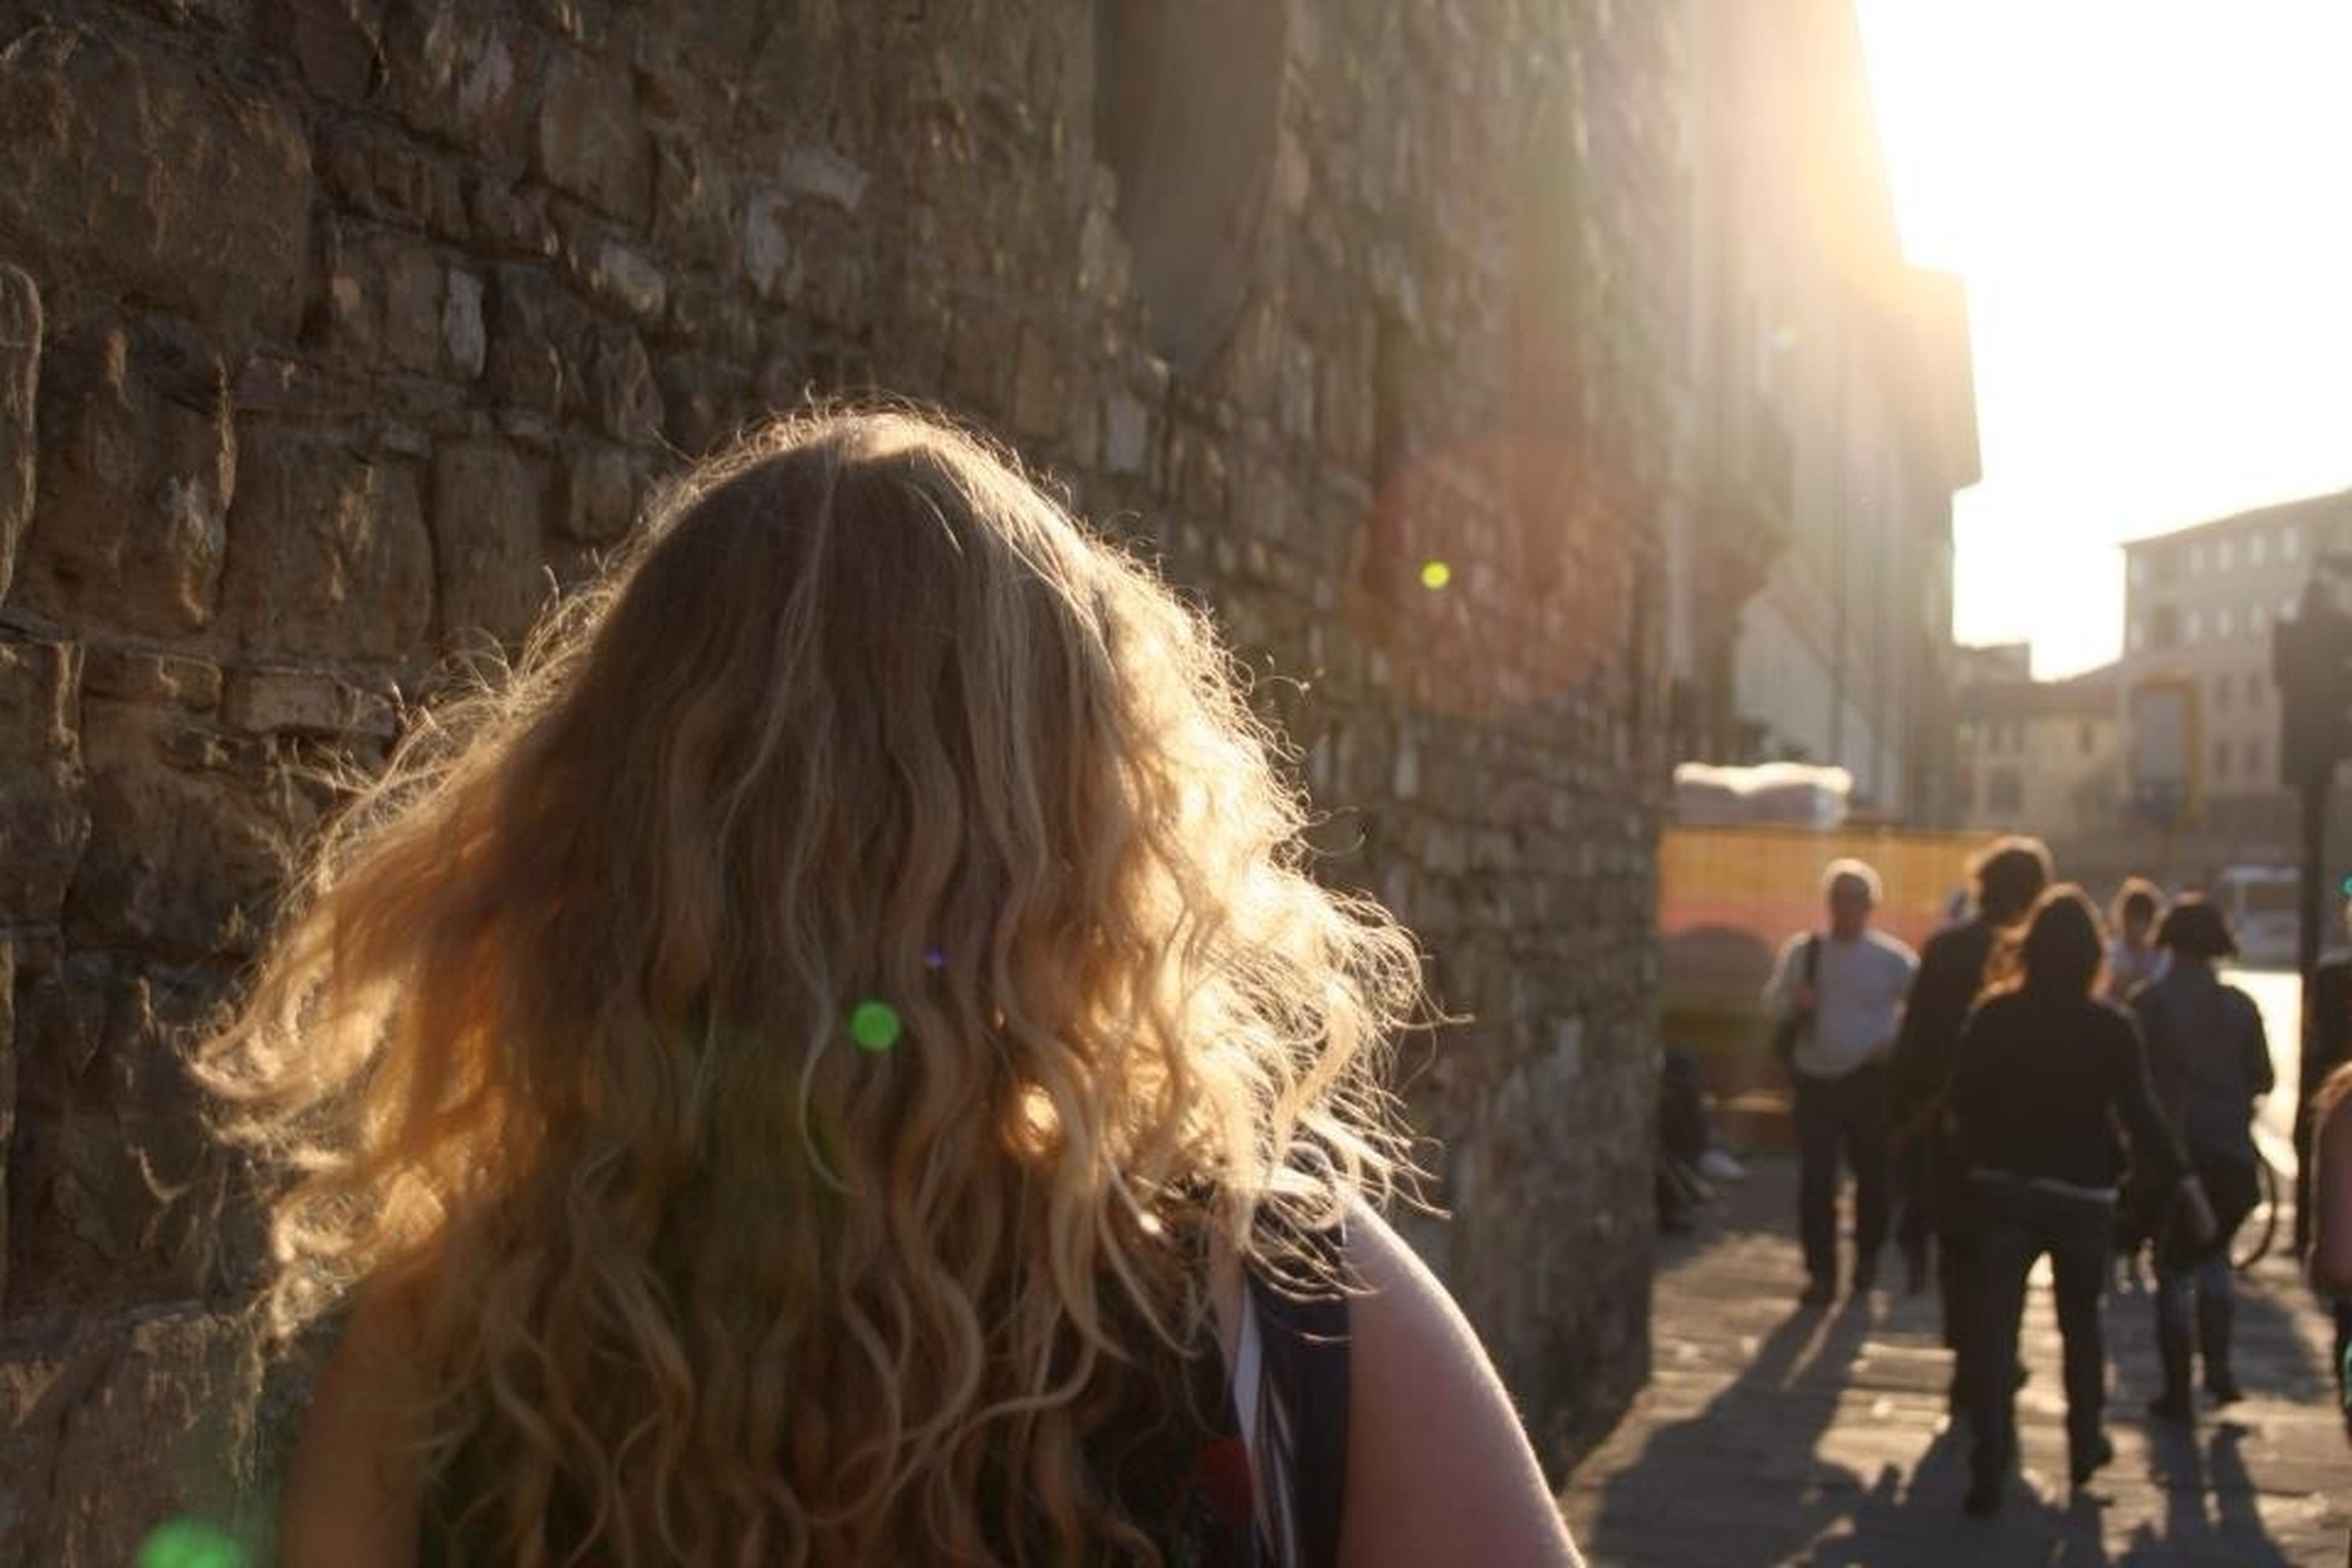 architecture, lifestyles, building exterior, built structure, person, leisure activity, city, street, young women, city life, long hair, incidental people, rear view, standing, men, large group of people, young adult, walking